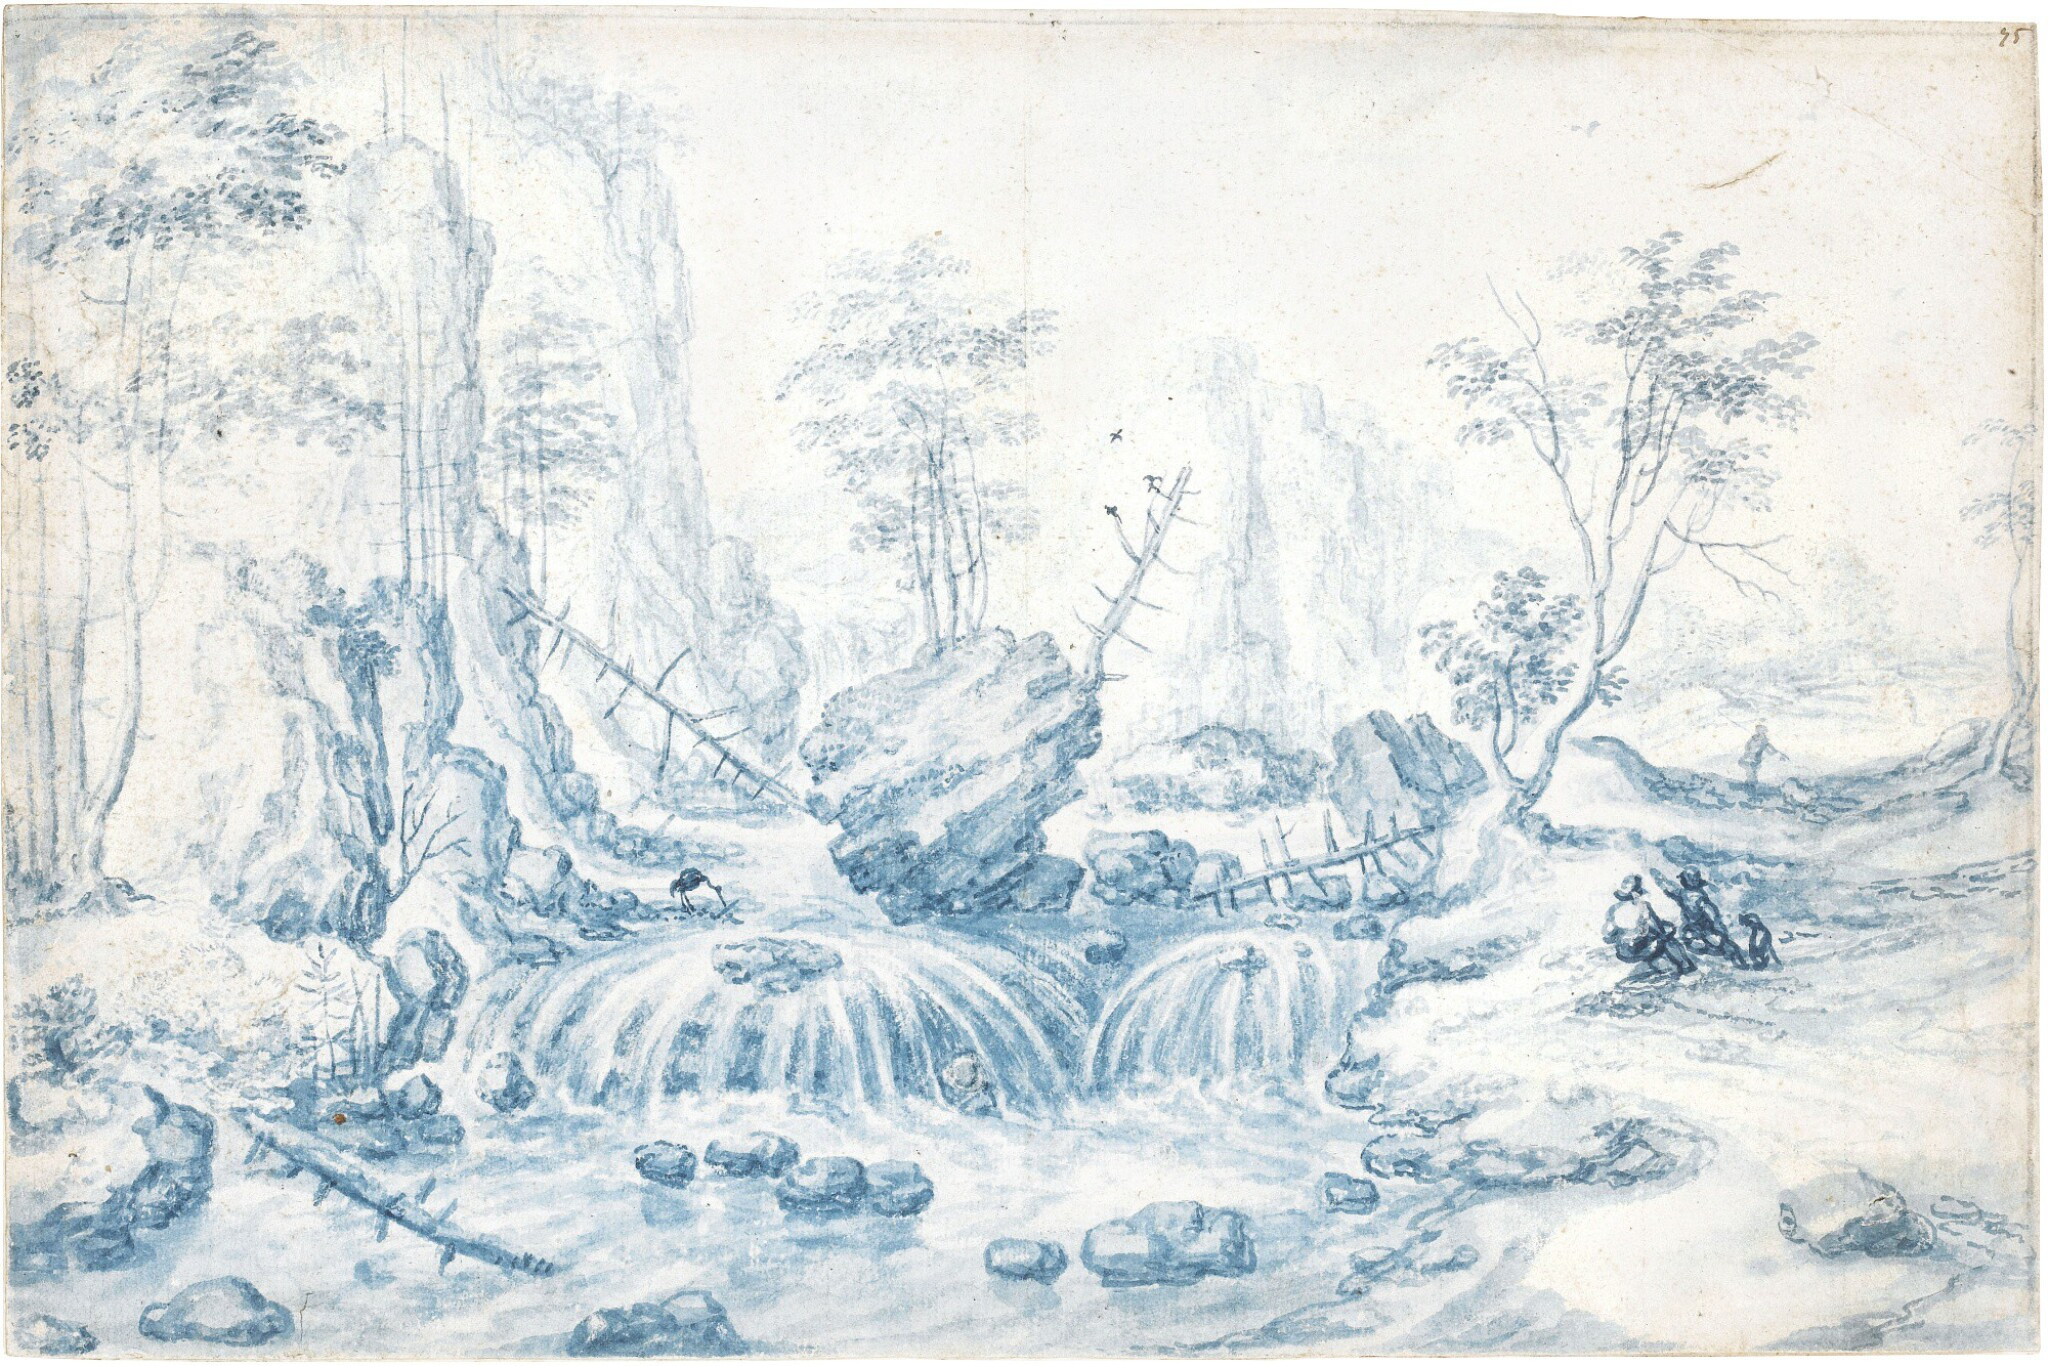 ISAAC MAJOR | A RUGGED MOUNTAIN LANDSCAPE WITH FIGURES BY A WATERFALL